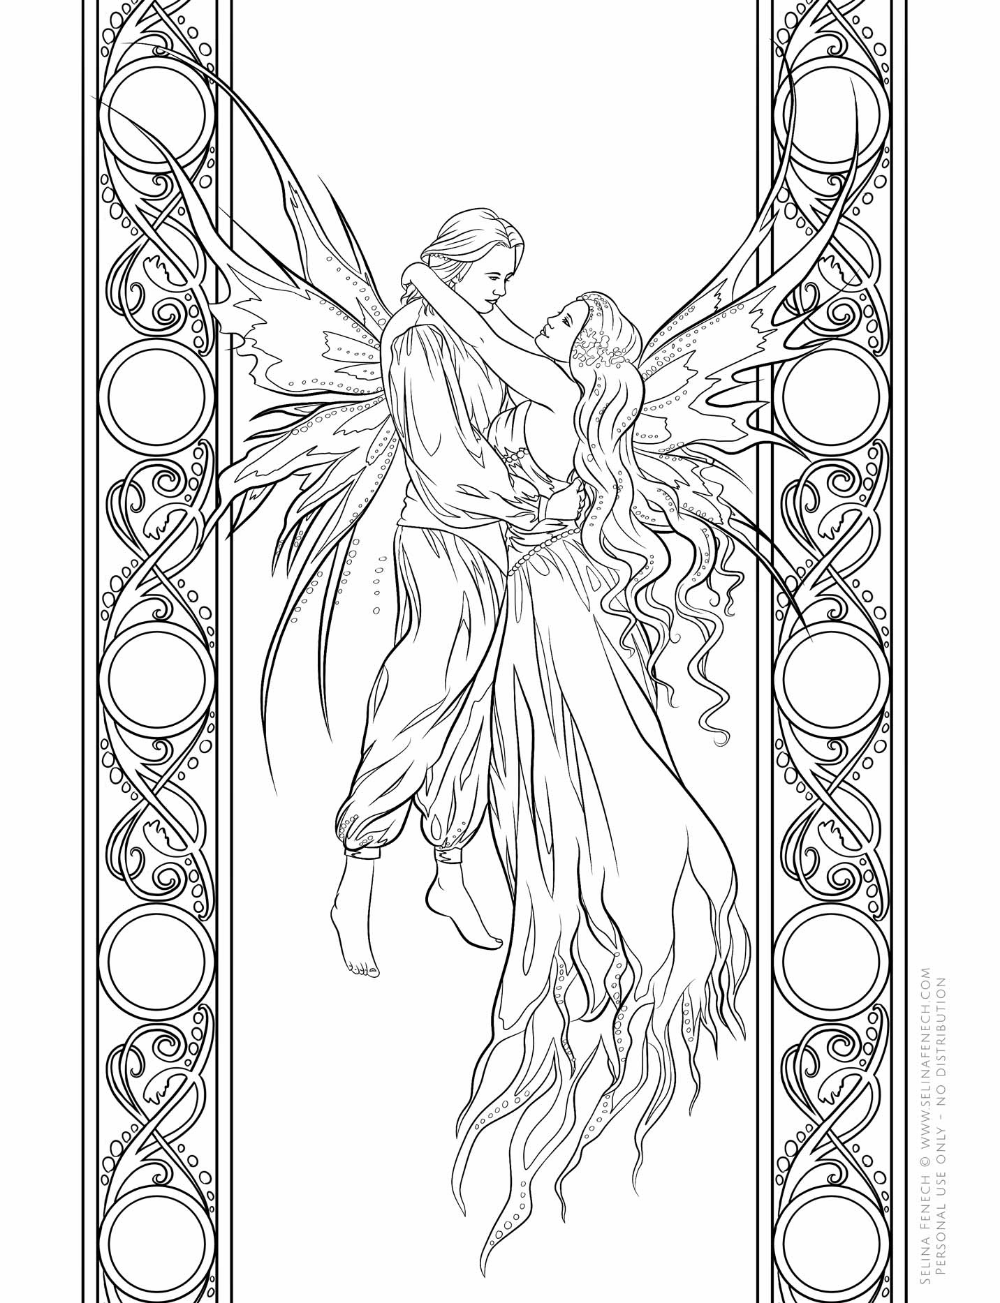 Happy Thoughts Artist Selina Fenech Fairy Companions Coloring Book Fairy Coloring Pages Cool Coloring Pages Coloring Books [ 1303 x 1000 Pixel ]